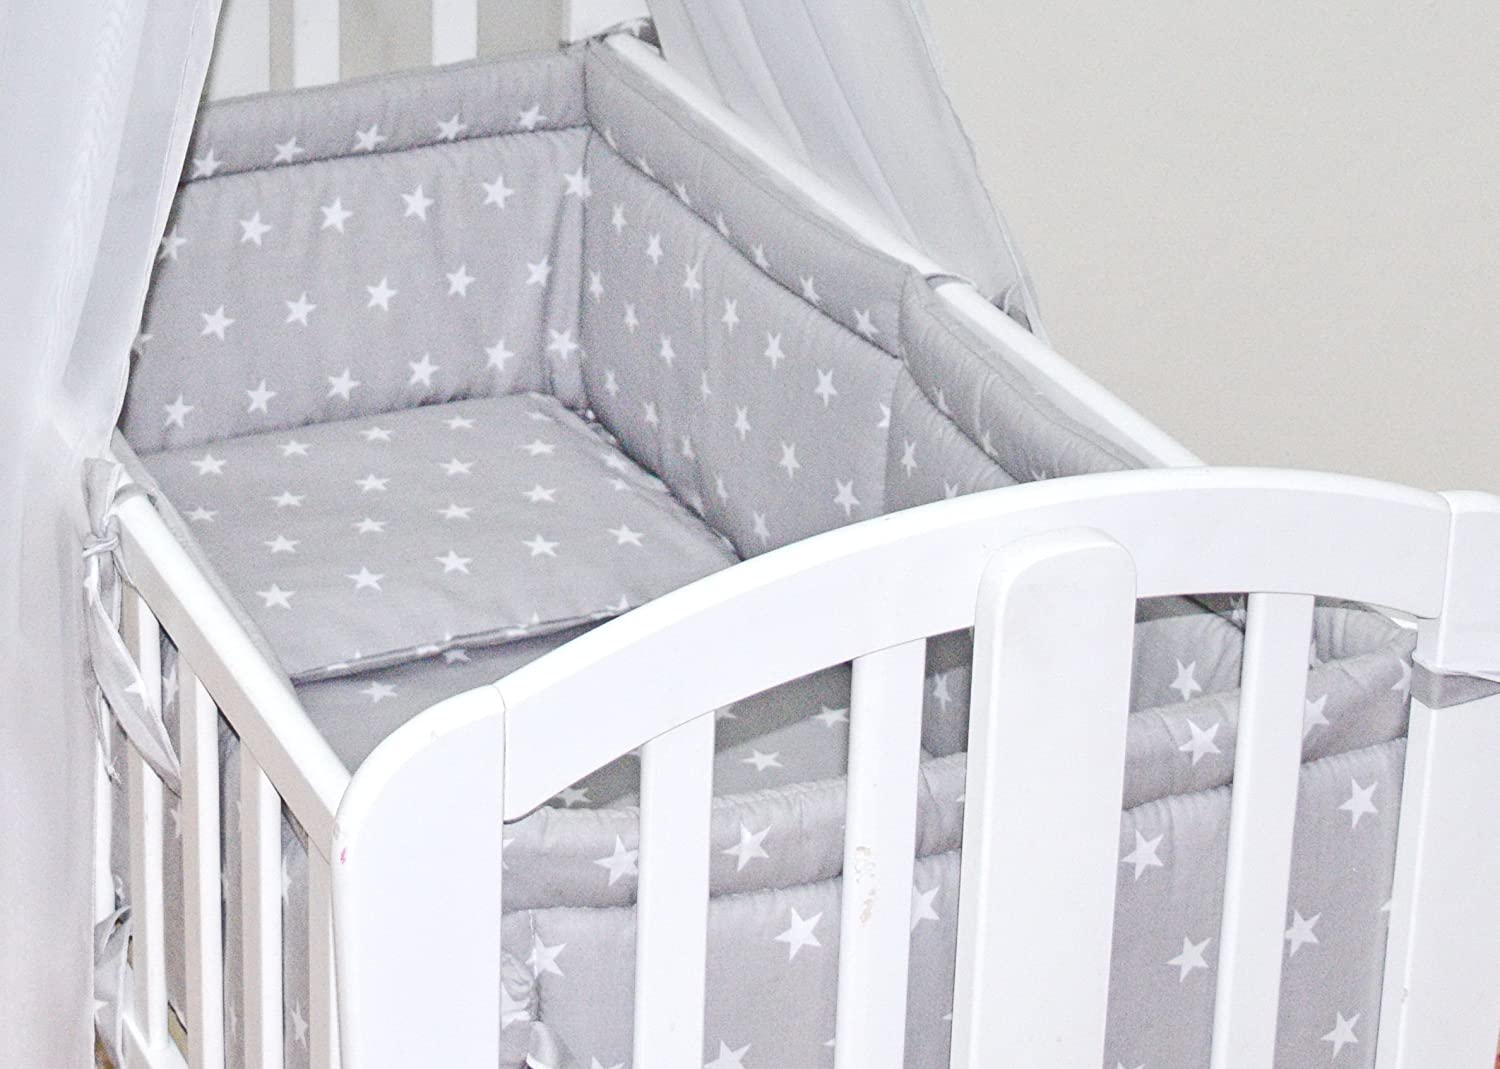 6pcs BABY SWINGING/ROCKING CRIB/CRADLE BEDDING SET/ALL ROUND BUMPER 100% COTTON (Grey Stars) MDSS LTD